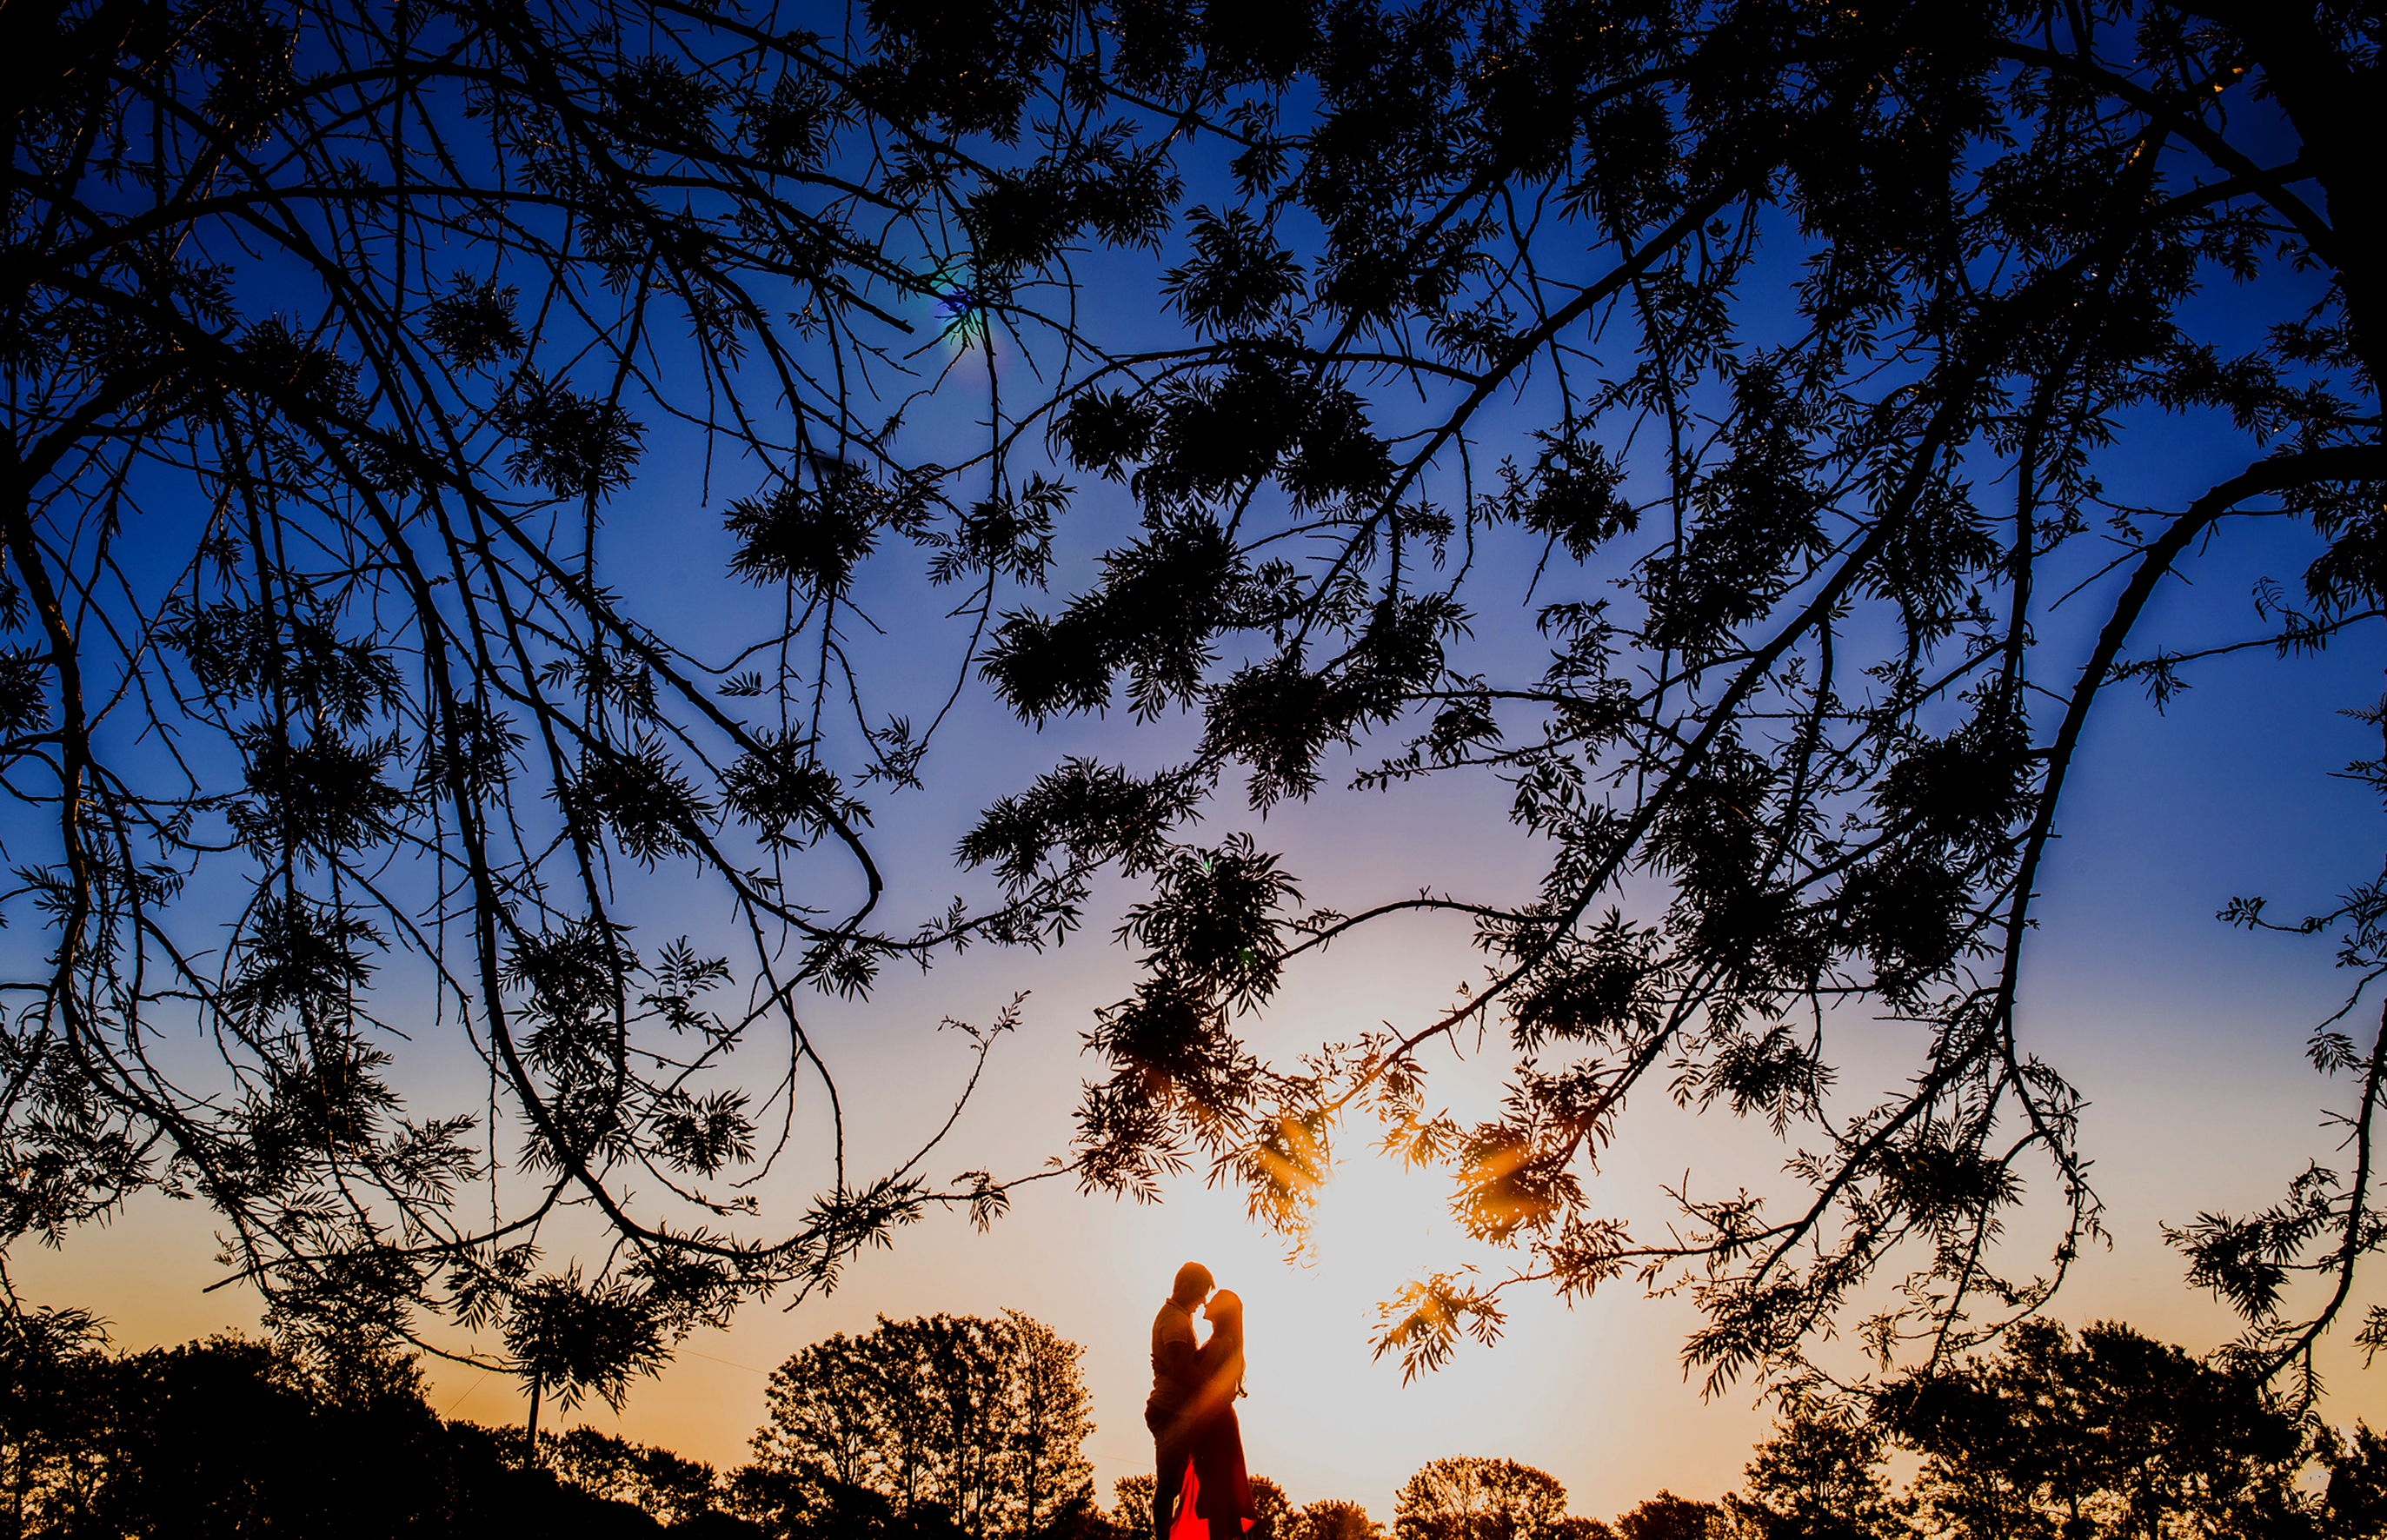 Silhouetted branches envelop a couple sharing an intimate moment at sunset